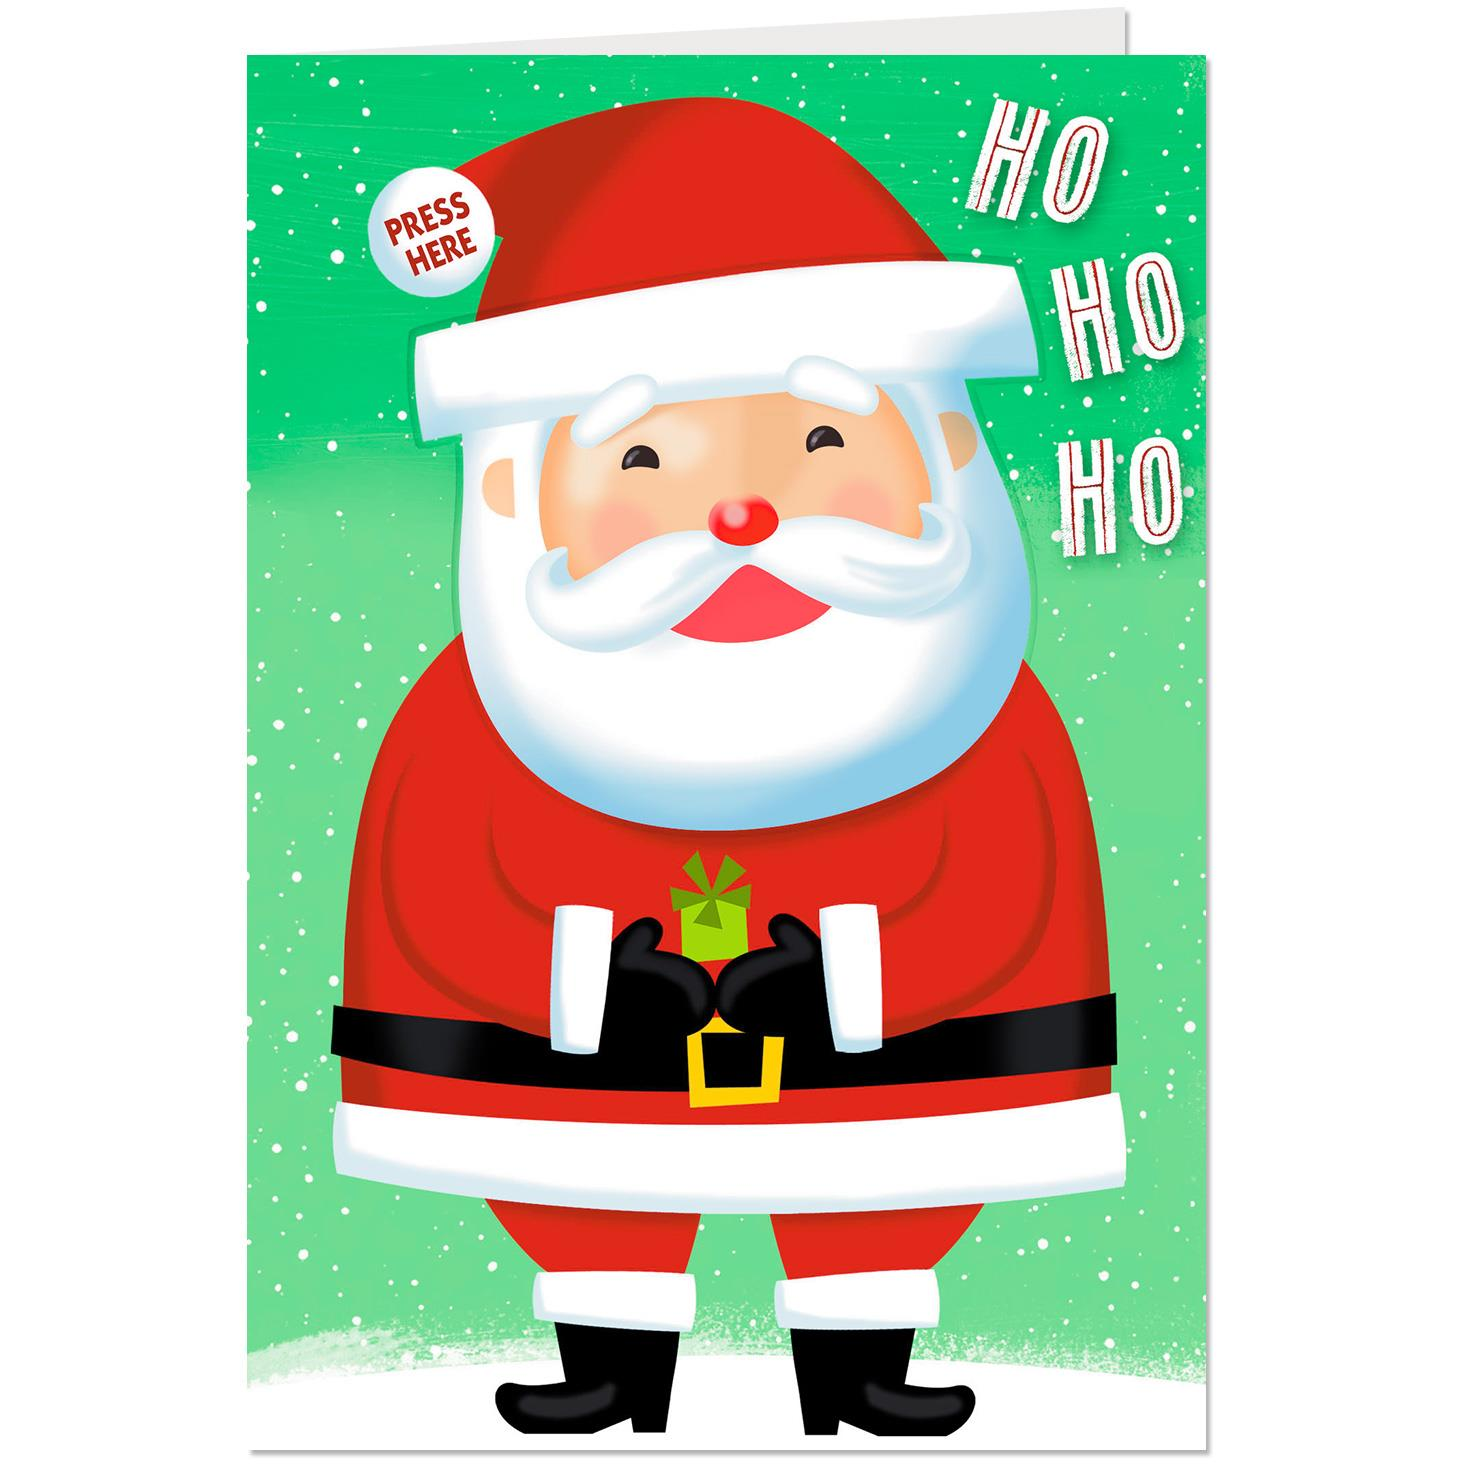 Ho Ho Ho Christmas Card With Sound and Light Greeting Cards Hallmark